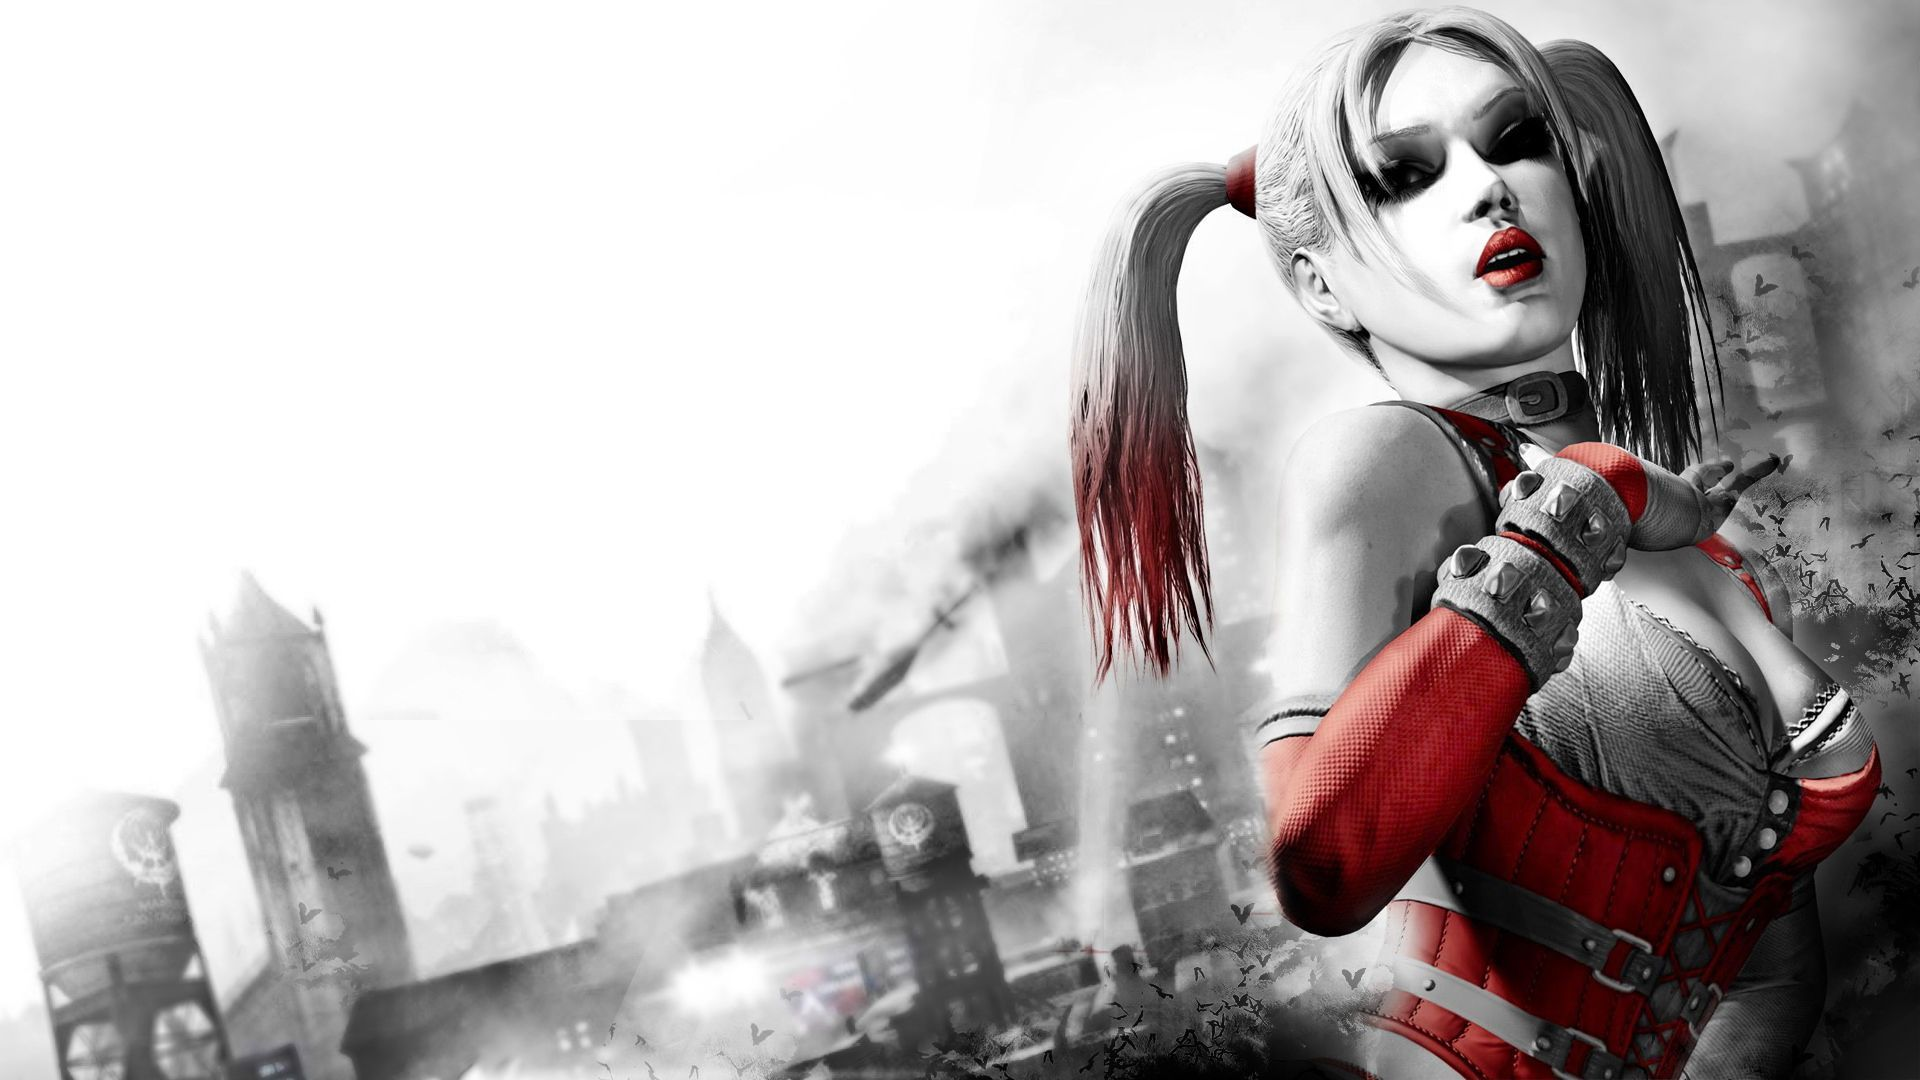 Harley Quinn   Batman   Arkham City wallpaper   1024119 1920x1080